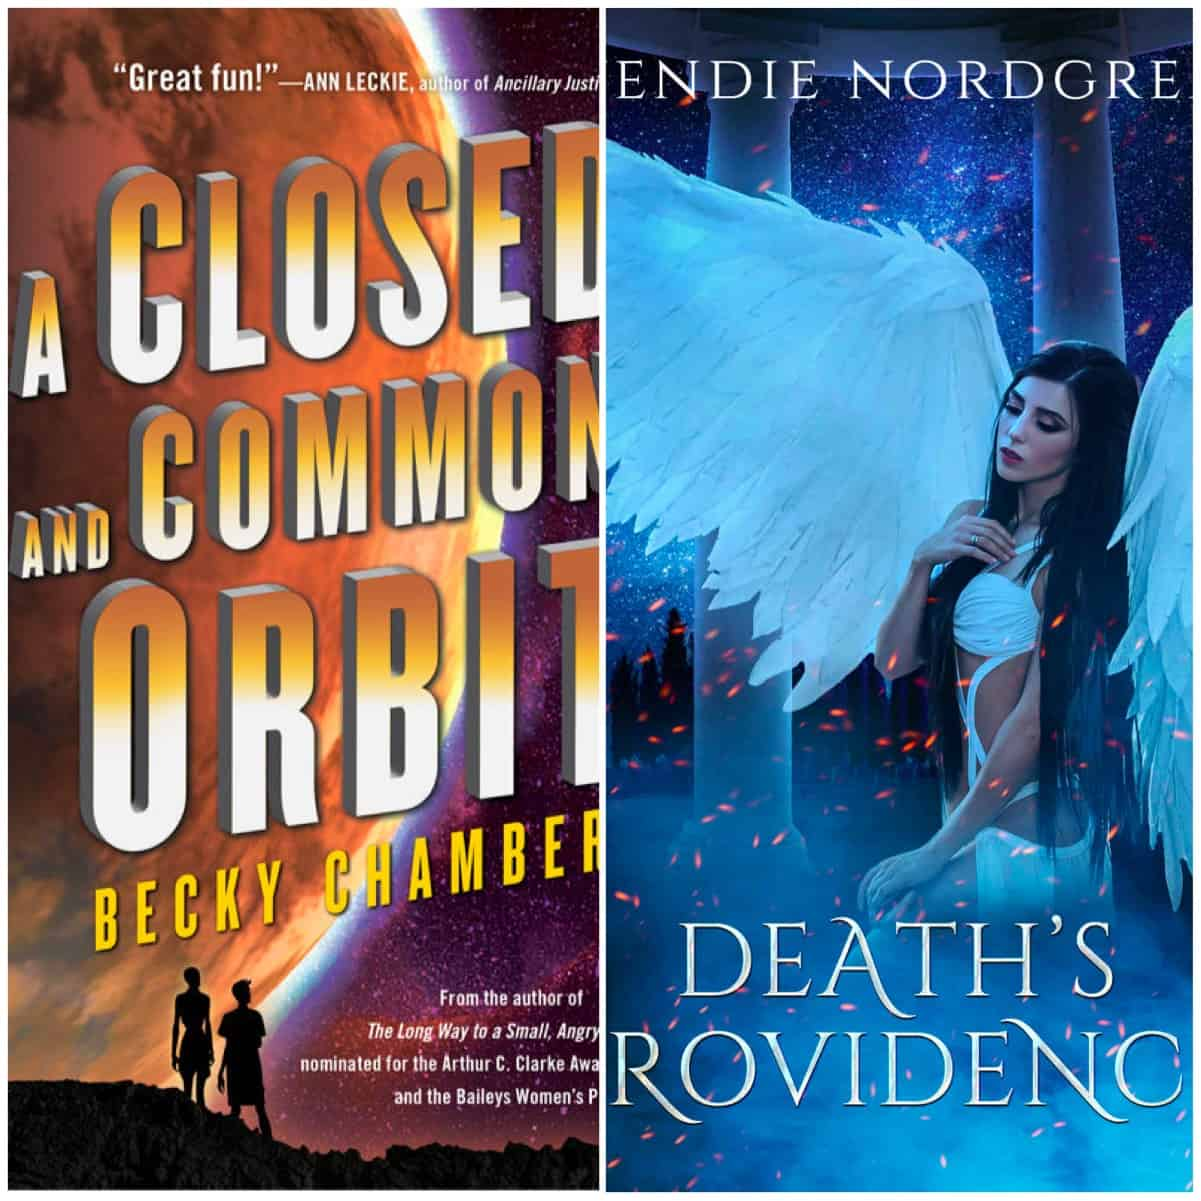 In this Book Chat, A CLOSED AND COMMON ORBIT by Becky Chambers and DEATH'S PROVIDENCE by Wendie Nordgren.